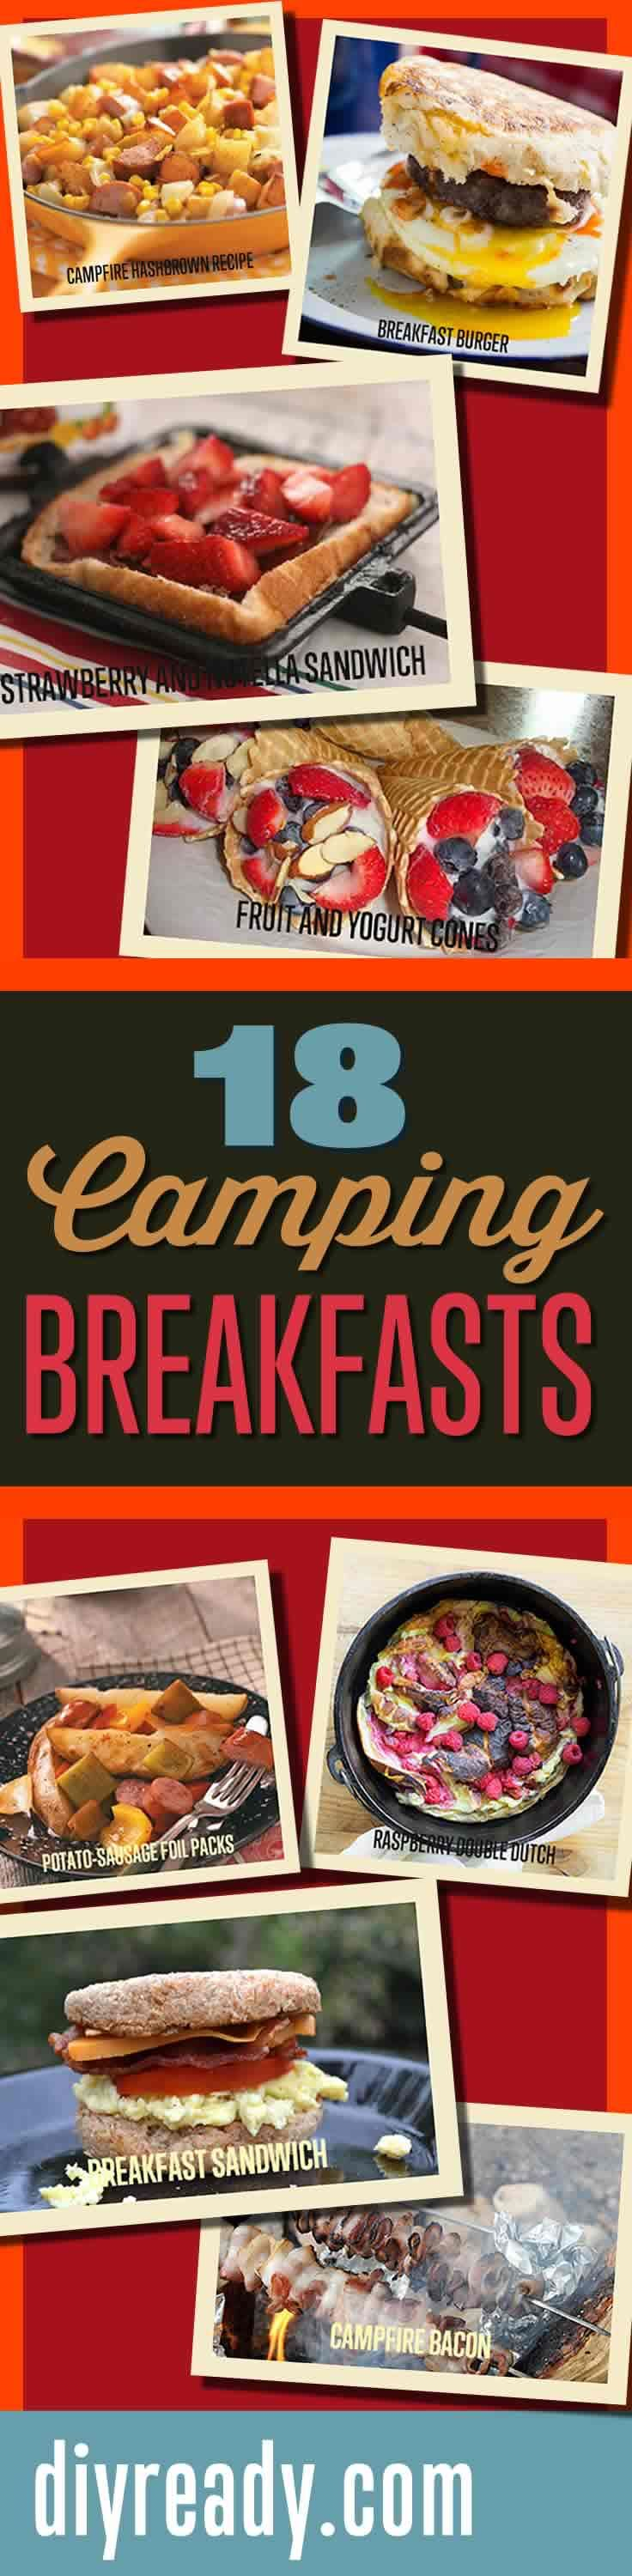 Mouthwatering Recipes You Must Try On Your Next Camping Trip | DIY Camping Breakfast Recipes and Easy Breakfast Ideas for Campfire Cooking https://diyprojects.com/18-mouthwatering-breakfast-recipes-to-try-on-your-next-camping-trip/